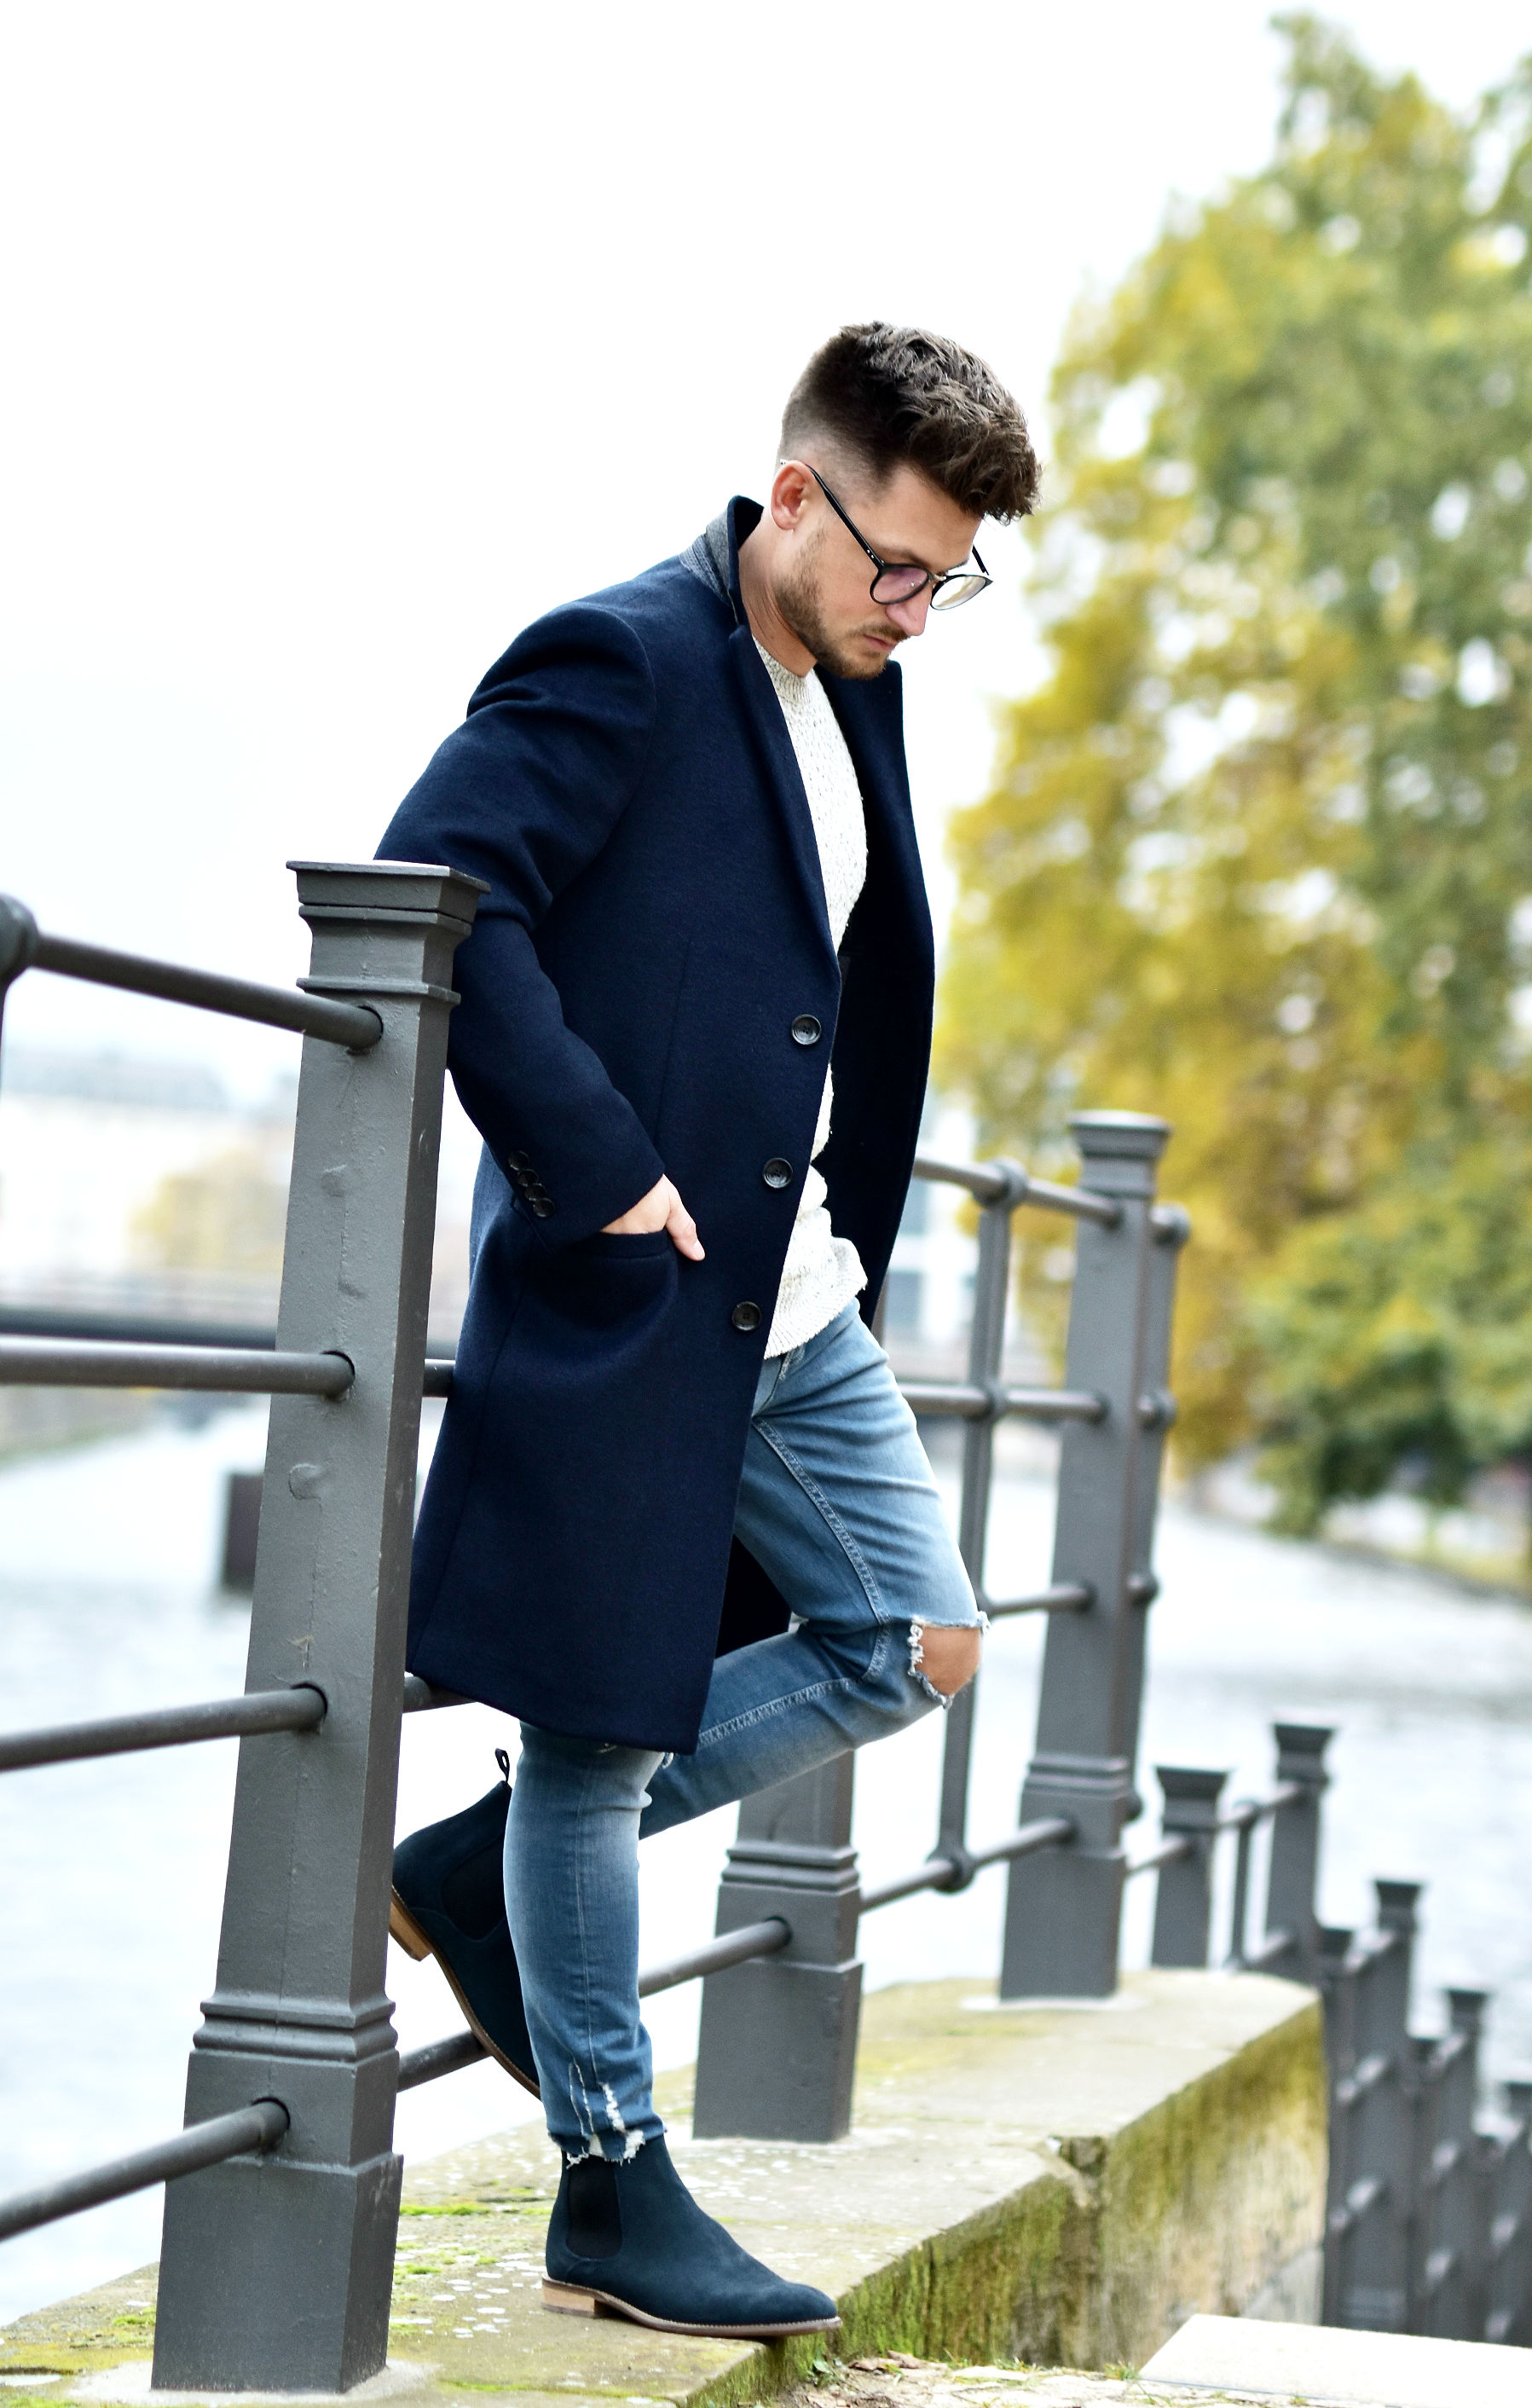 tommeezjerry-styleblog-maennerblog-maenner-modeblog-berlin-berlinblog-maennermodeblog-outfit-mantel-marks-and-spencer-coat-chelsea-boots-autumn-look-6